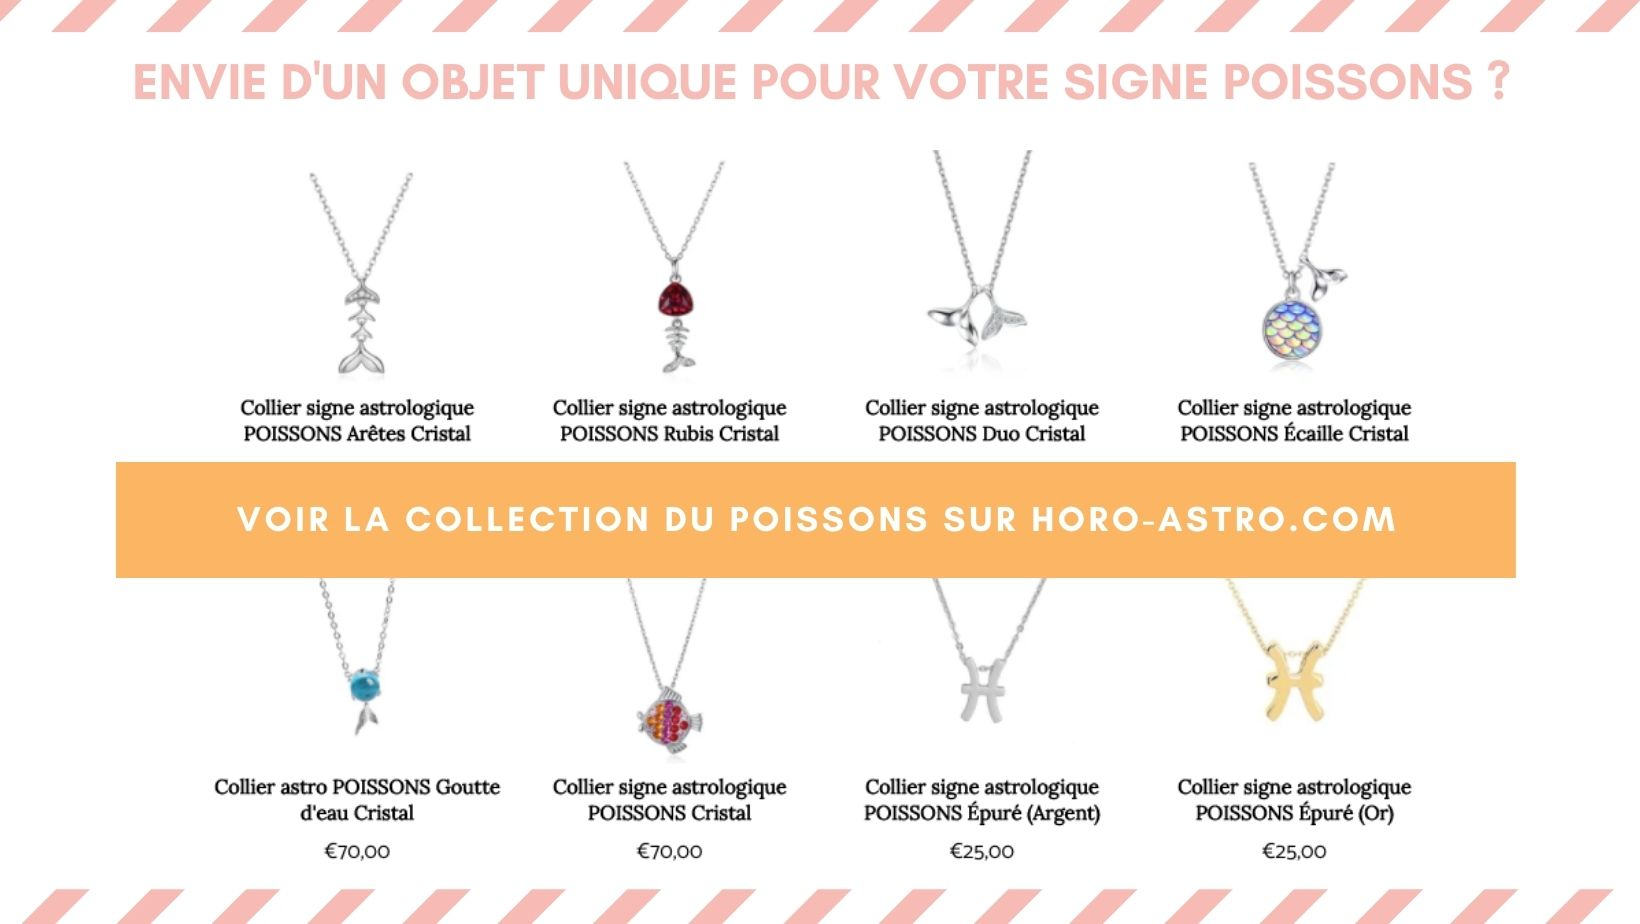 Collection Horo-Astro signe astrologique Poissons